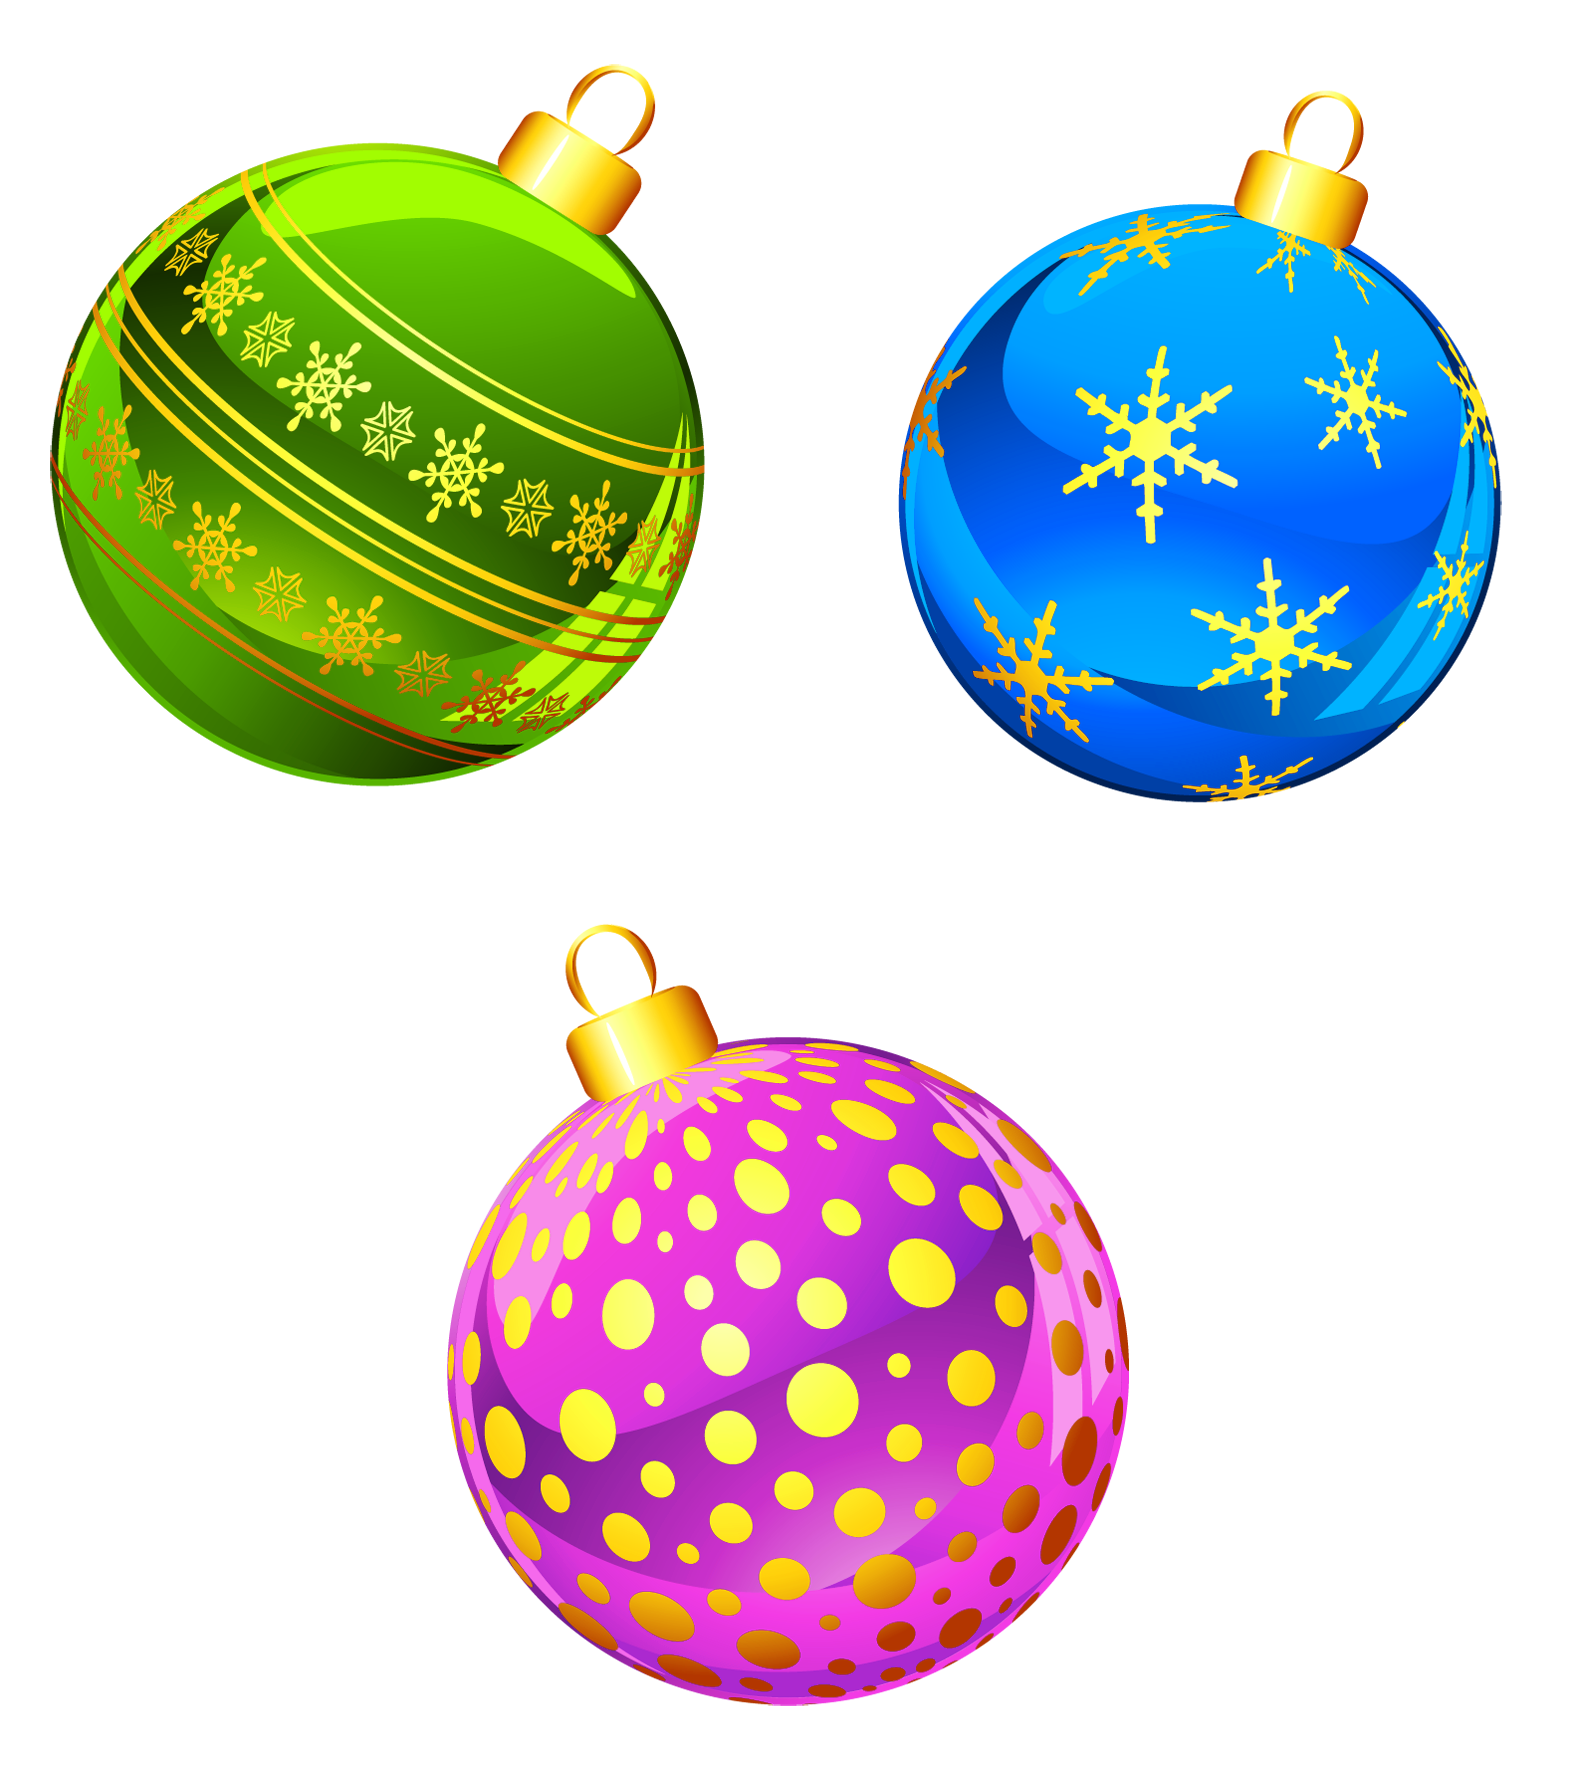 Christmas Ornament Clipart images collection for free.